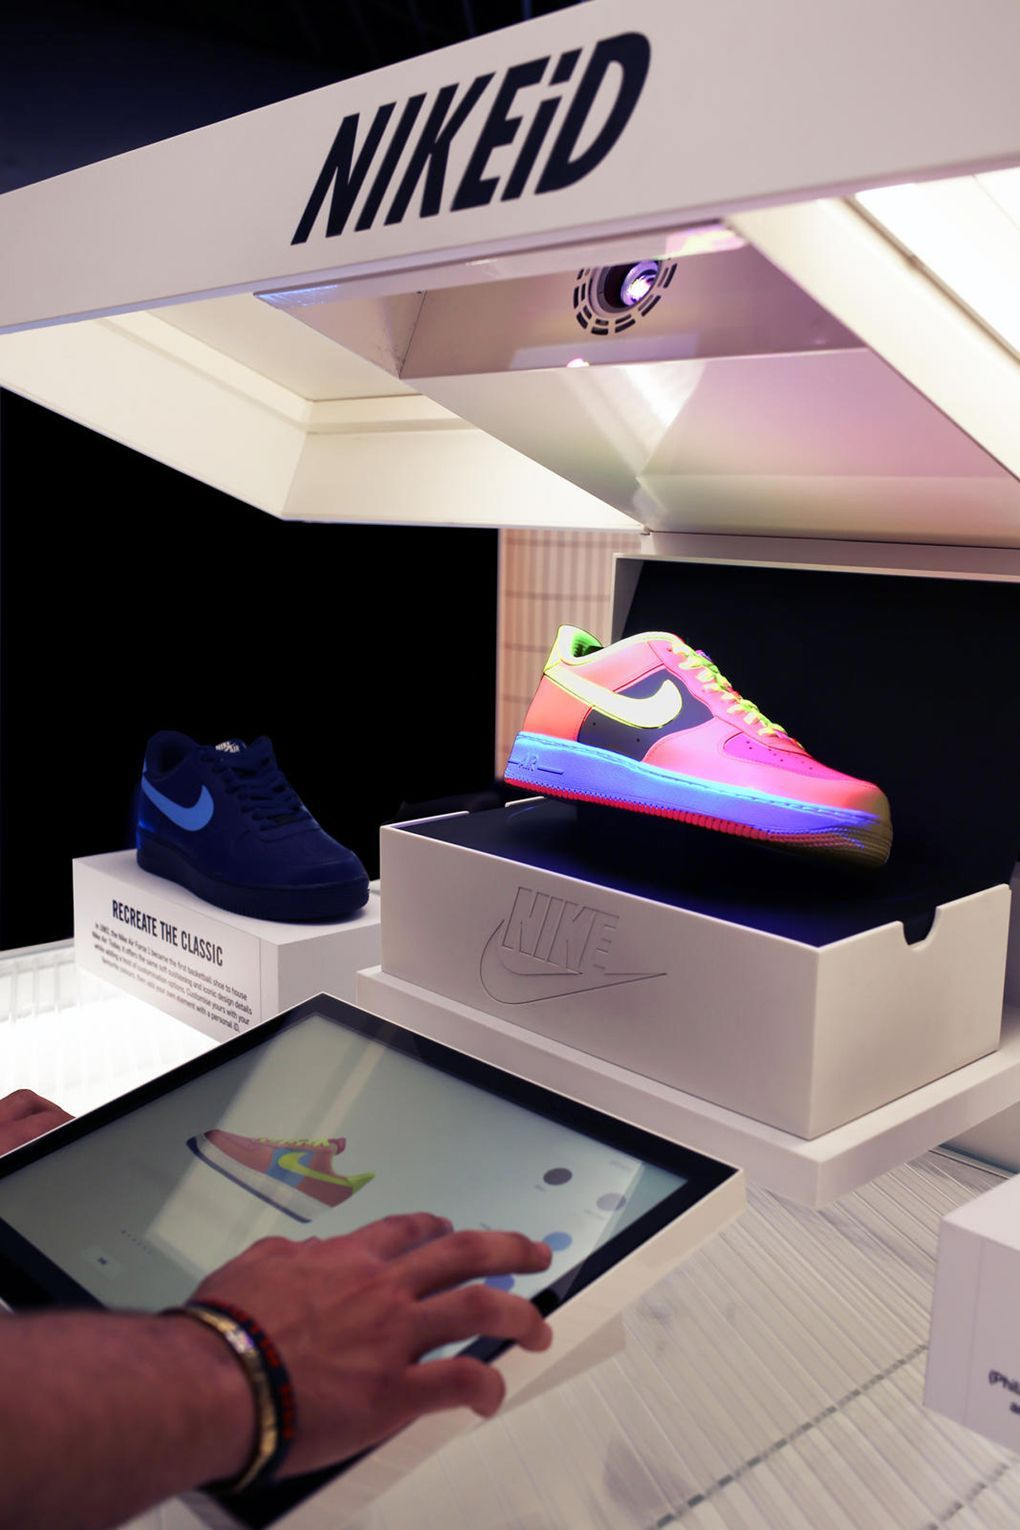 85688c4fc42d8 The new Nike iD Direct Studio is the future of customised kicks ...